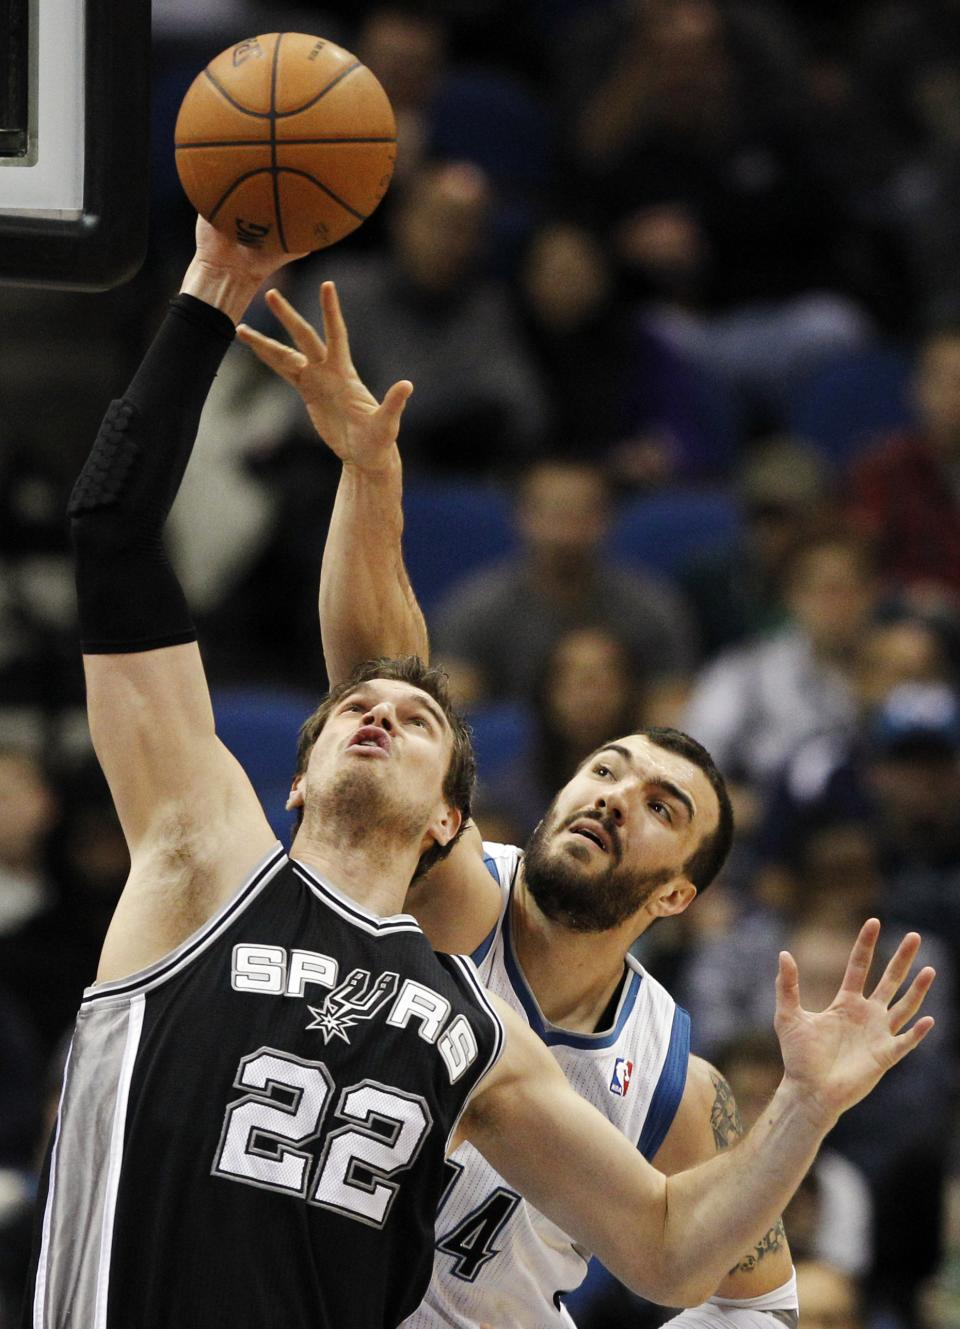 San Antonio Spurs center Tiago Splitter (22), of Brazil, brings down a rebound against Minnesota Timberwolves center Nikola Pekovic (14), of Montenegro, during the first half of an NBA basketball game Wednesday, Feb. 6, 2013, in Minneapolis. (AP Photo/Genevieve Ross)